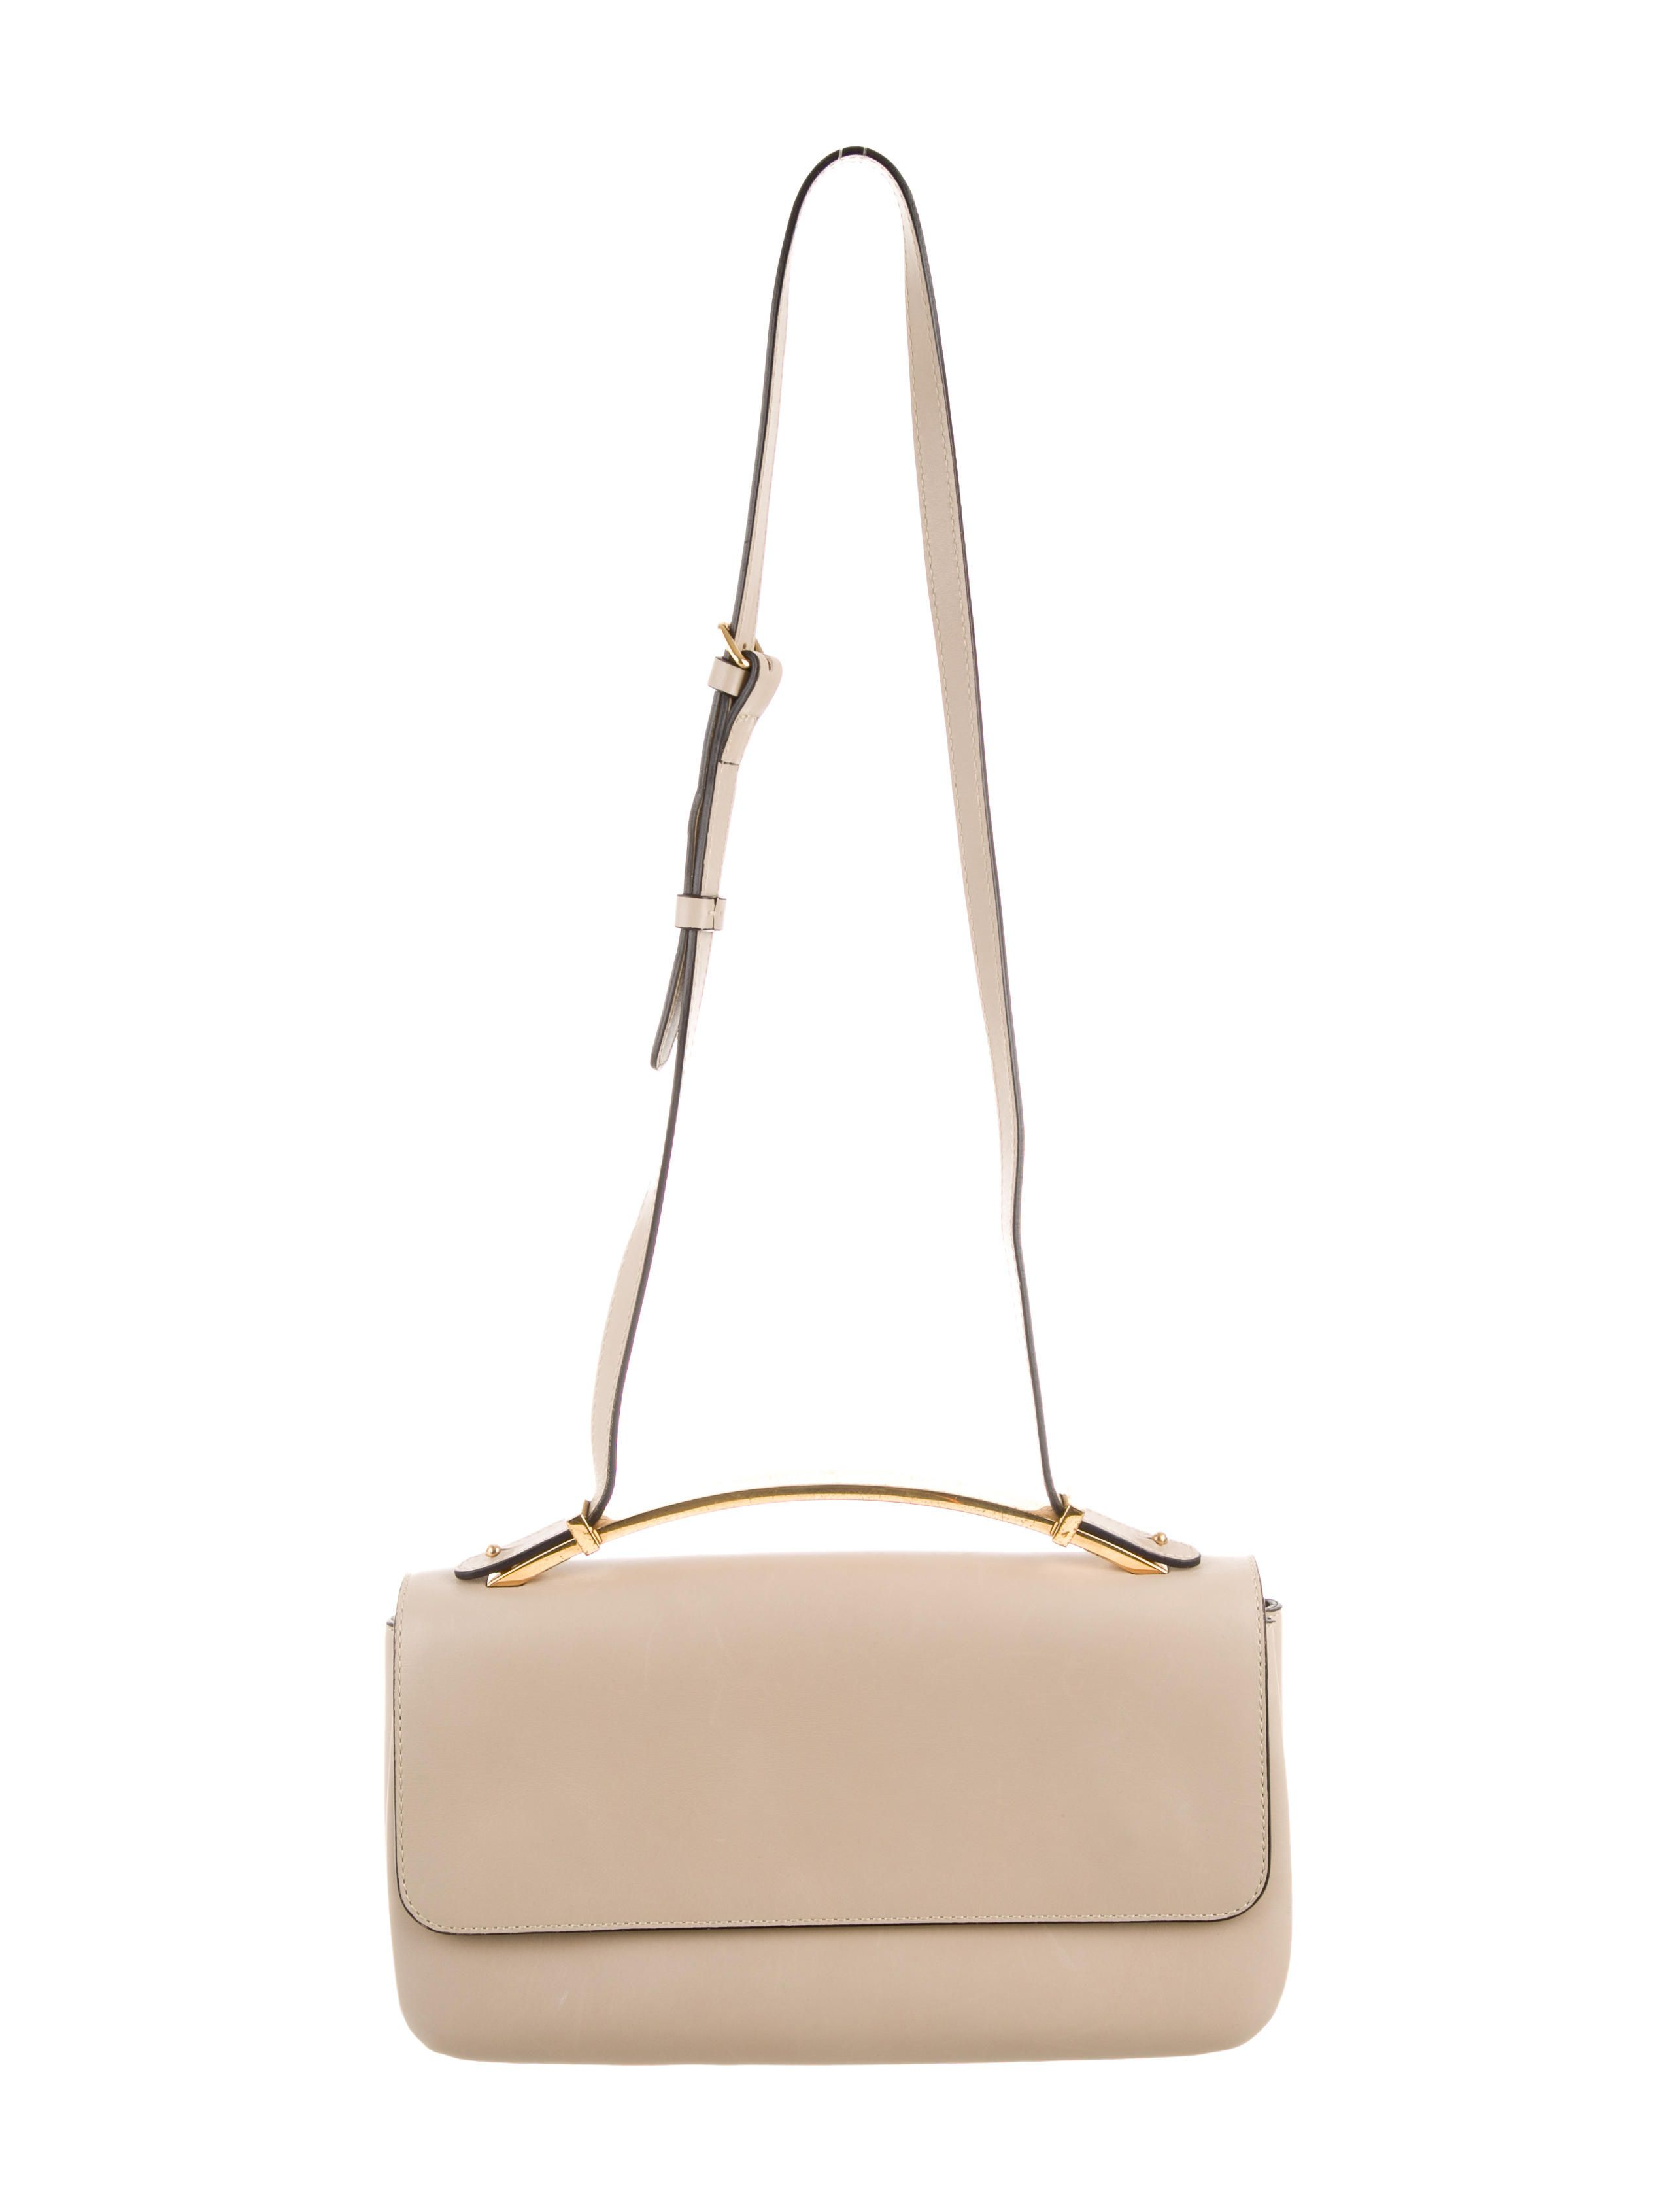 Tan leather Marni shoulder bag with gold-tone hardware, tonal stitching throughout, adjustable strap, beige canvas lining, three compartments and dual snap closures at front flap. Includes dust bag. Shop authentic designer handbags by Marni at The RealReal.